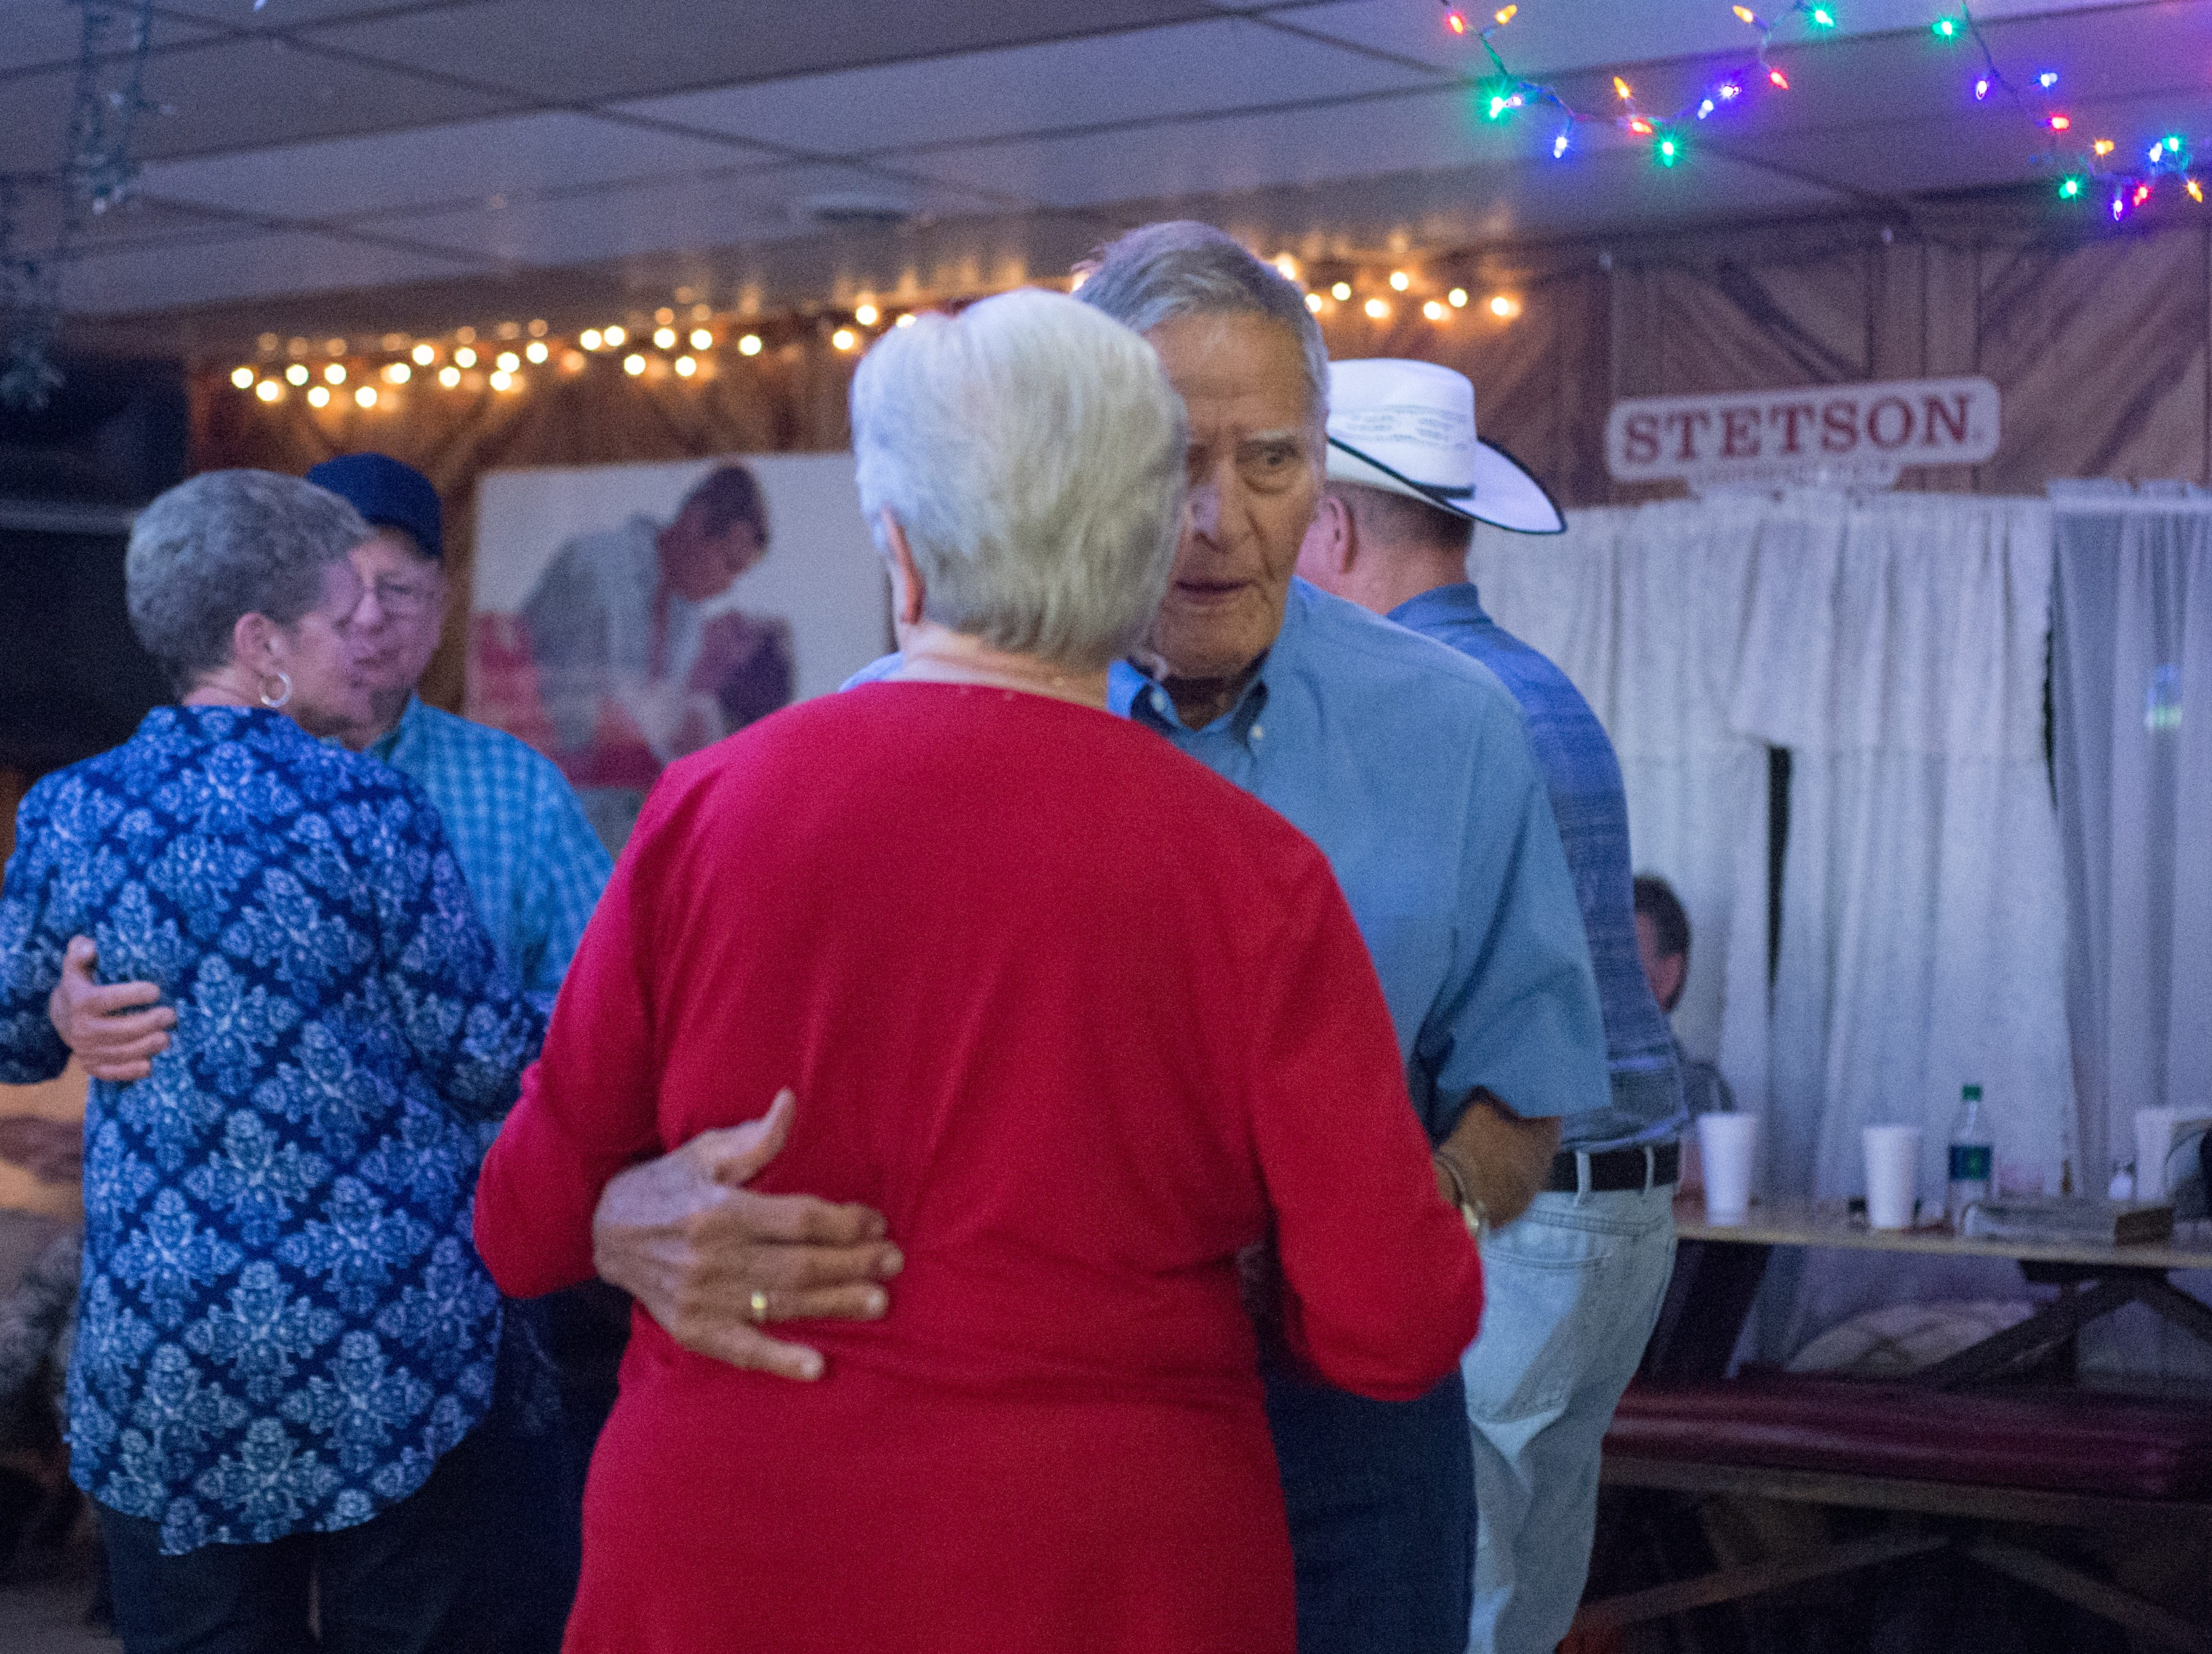 Bobbie Barnes and Willie Martin enjoy a dance at Long Hollow Jamboree in Goodlettsville on Saturday, April 7.